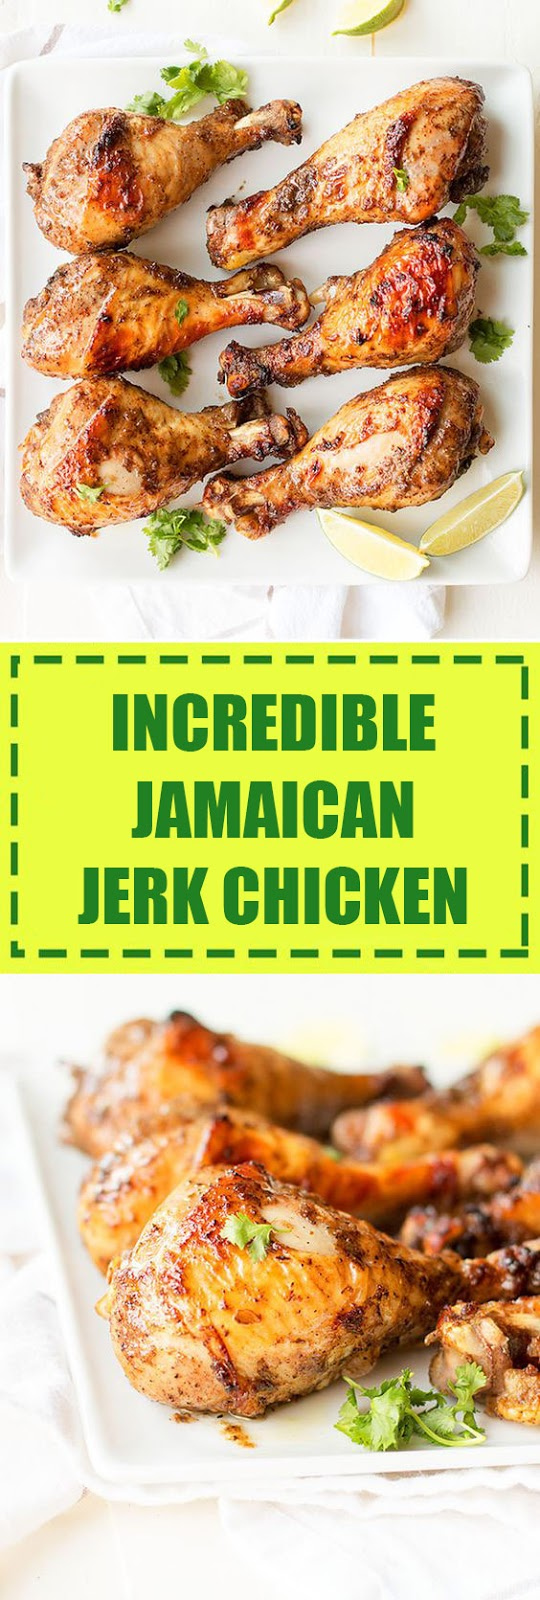 Incredible Jamaican Jerk Chicken